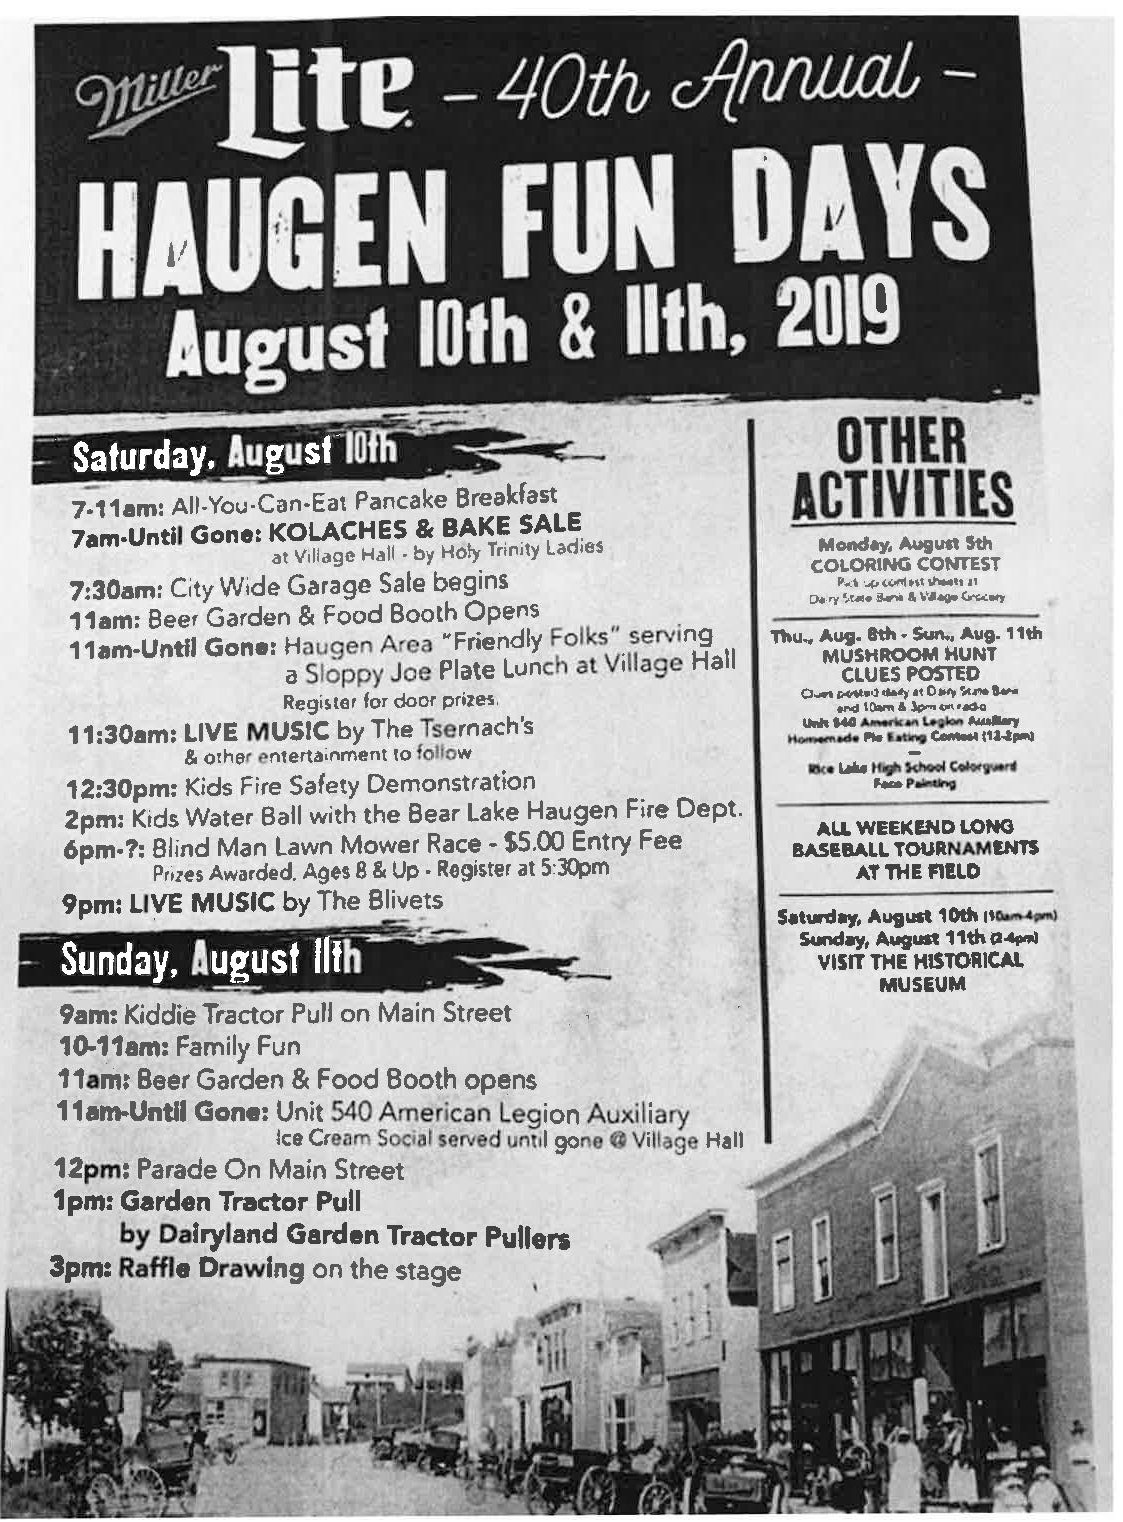 Haugen Fun Days